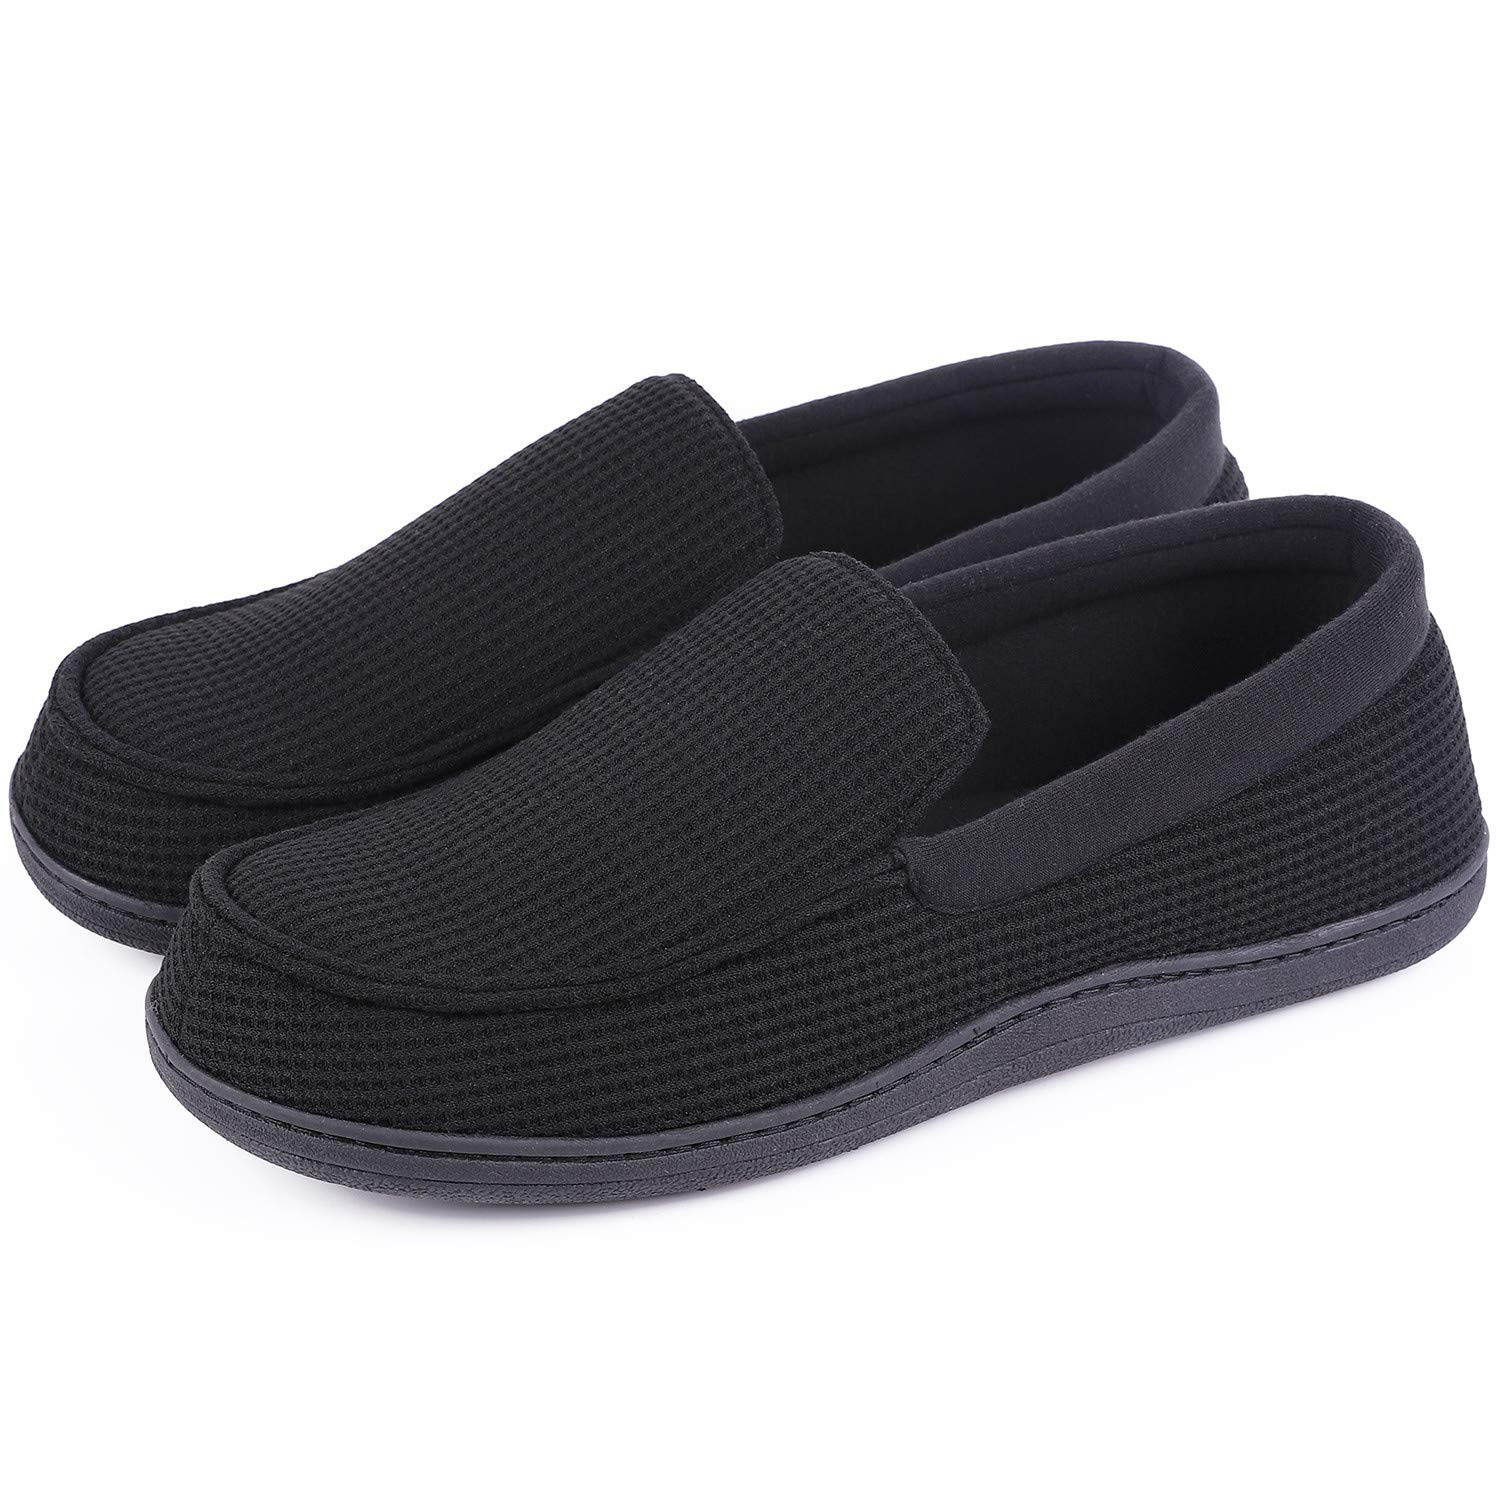 HomeTop Men's Comfort Memory Foam Moccasin Slippers Breathable Cotton Knit House Shoes w/Anti-Skid Rubber Sole (10 D(M) US, Black)